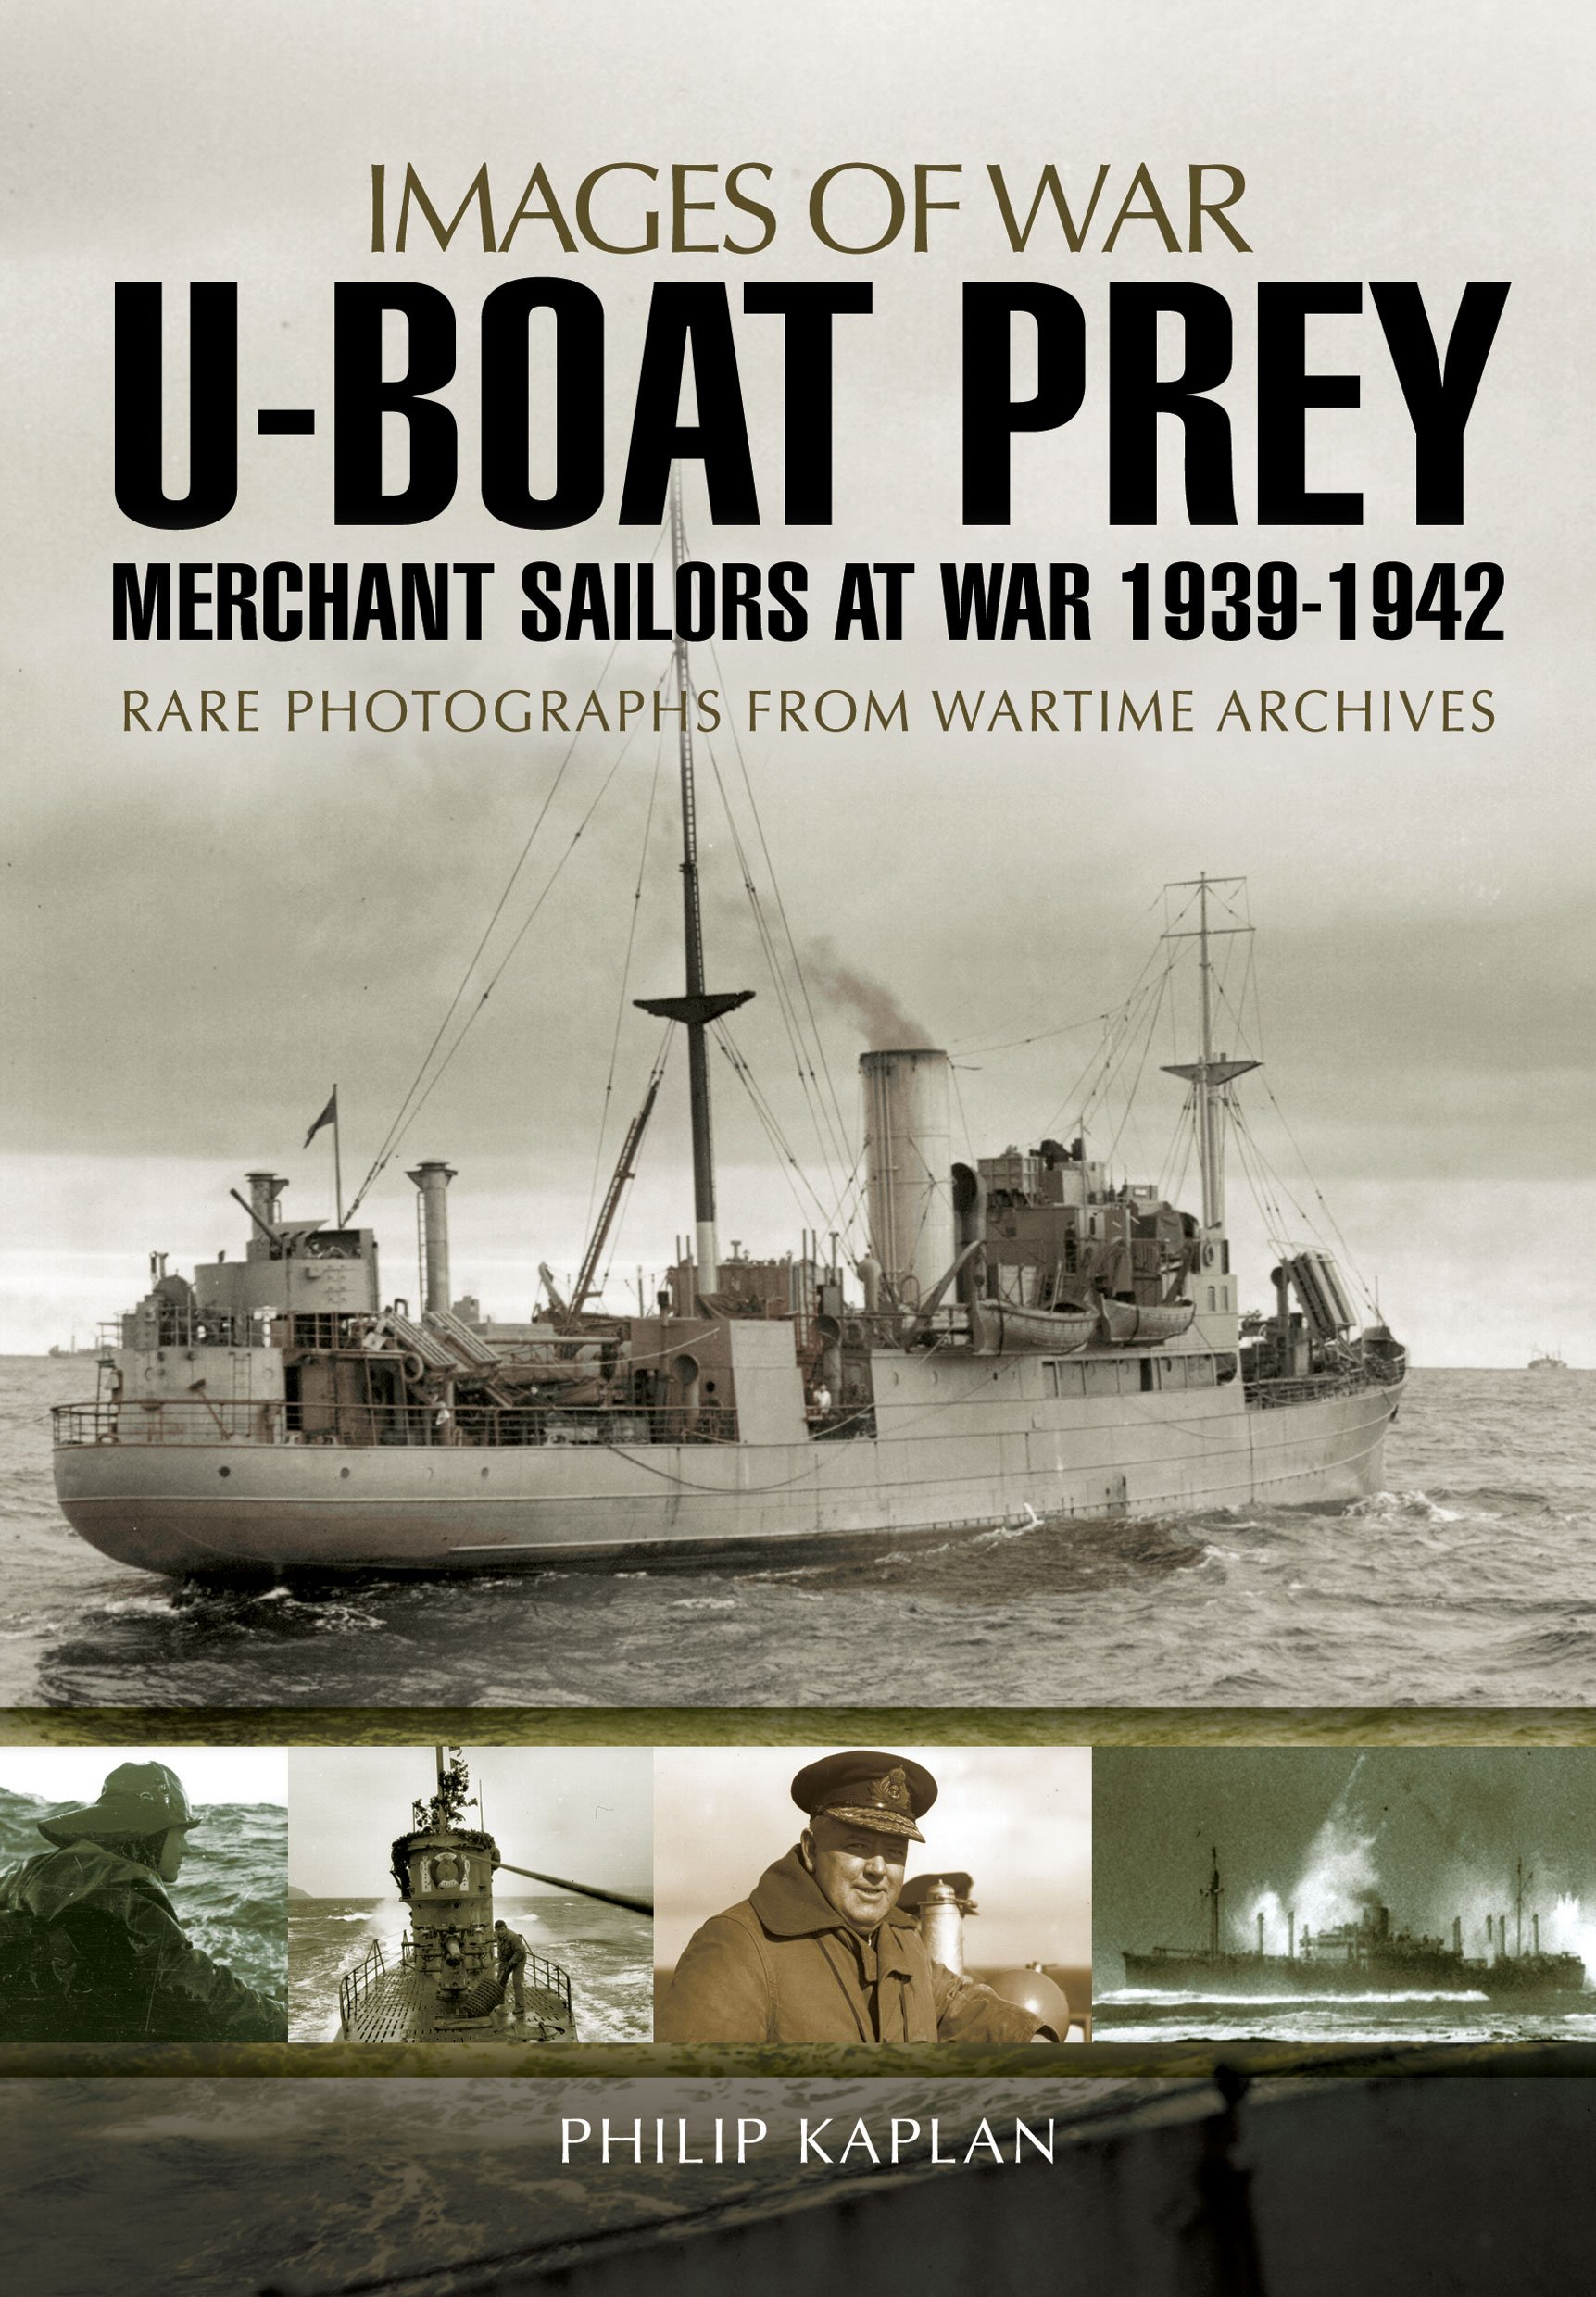 U-boat Prey: Merchant Sailors at War, 1939-1942 (Images of War) free download